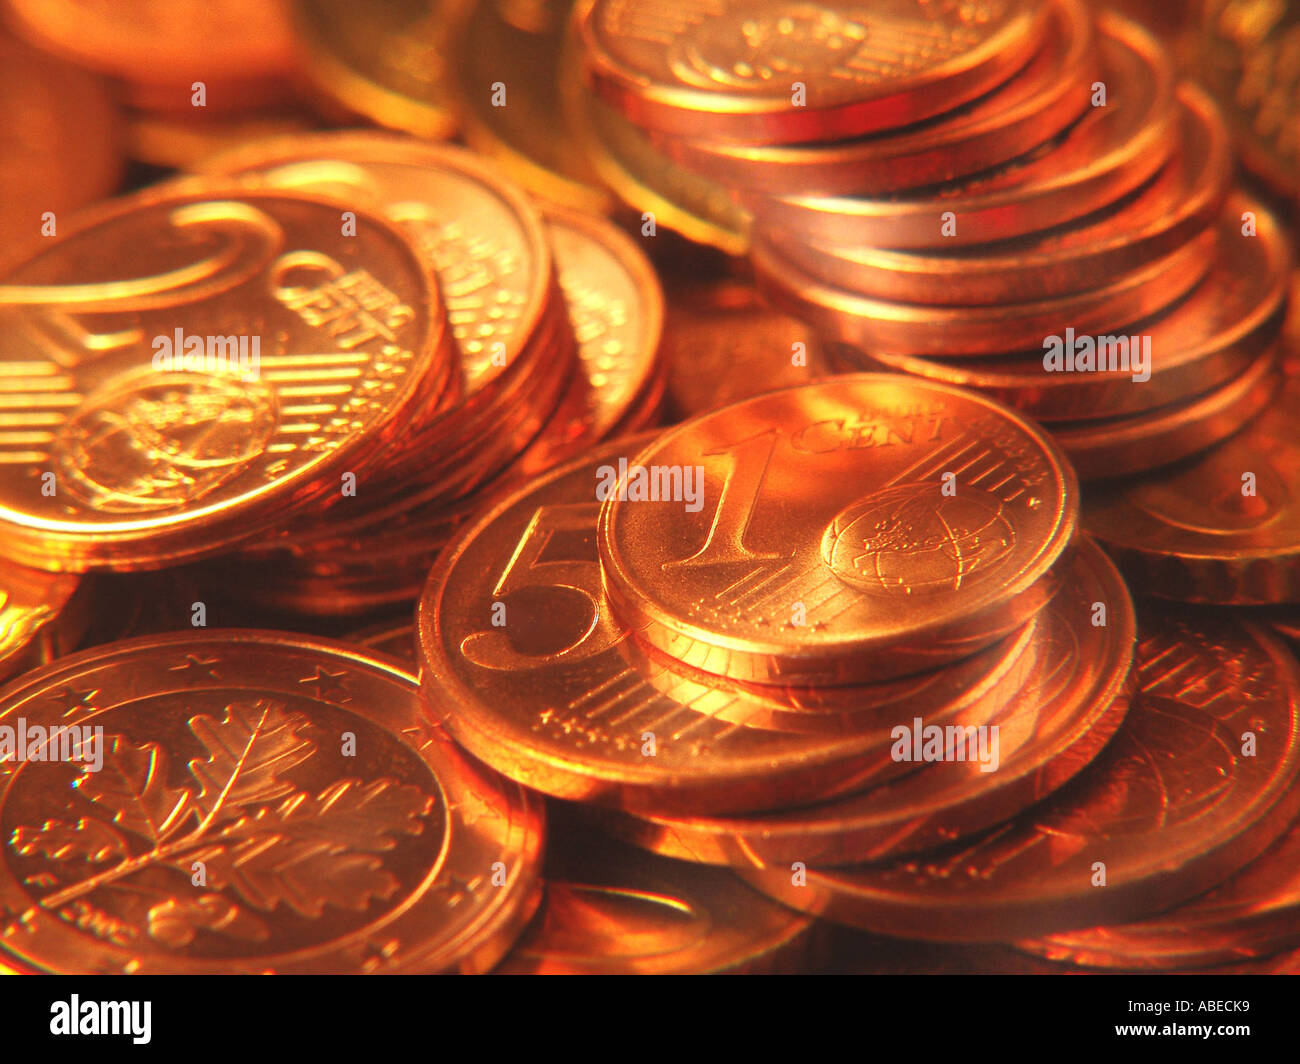 Cent coins - Stock Image